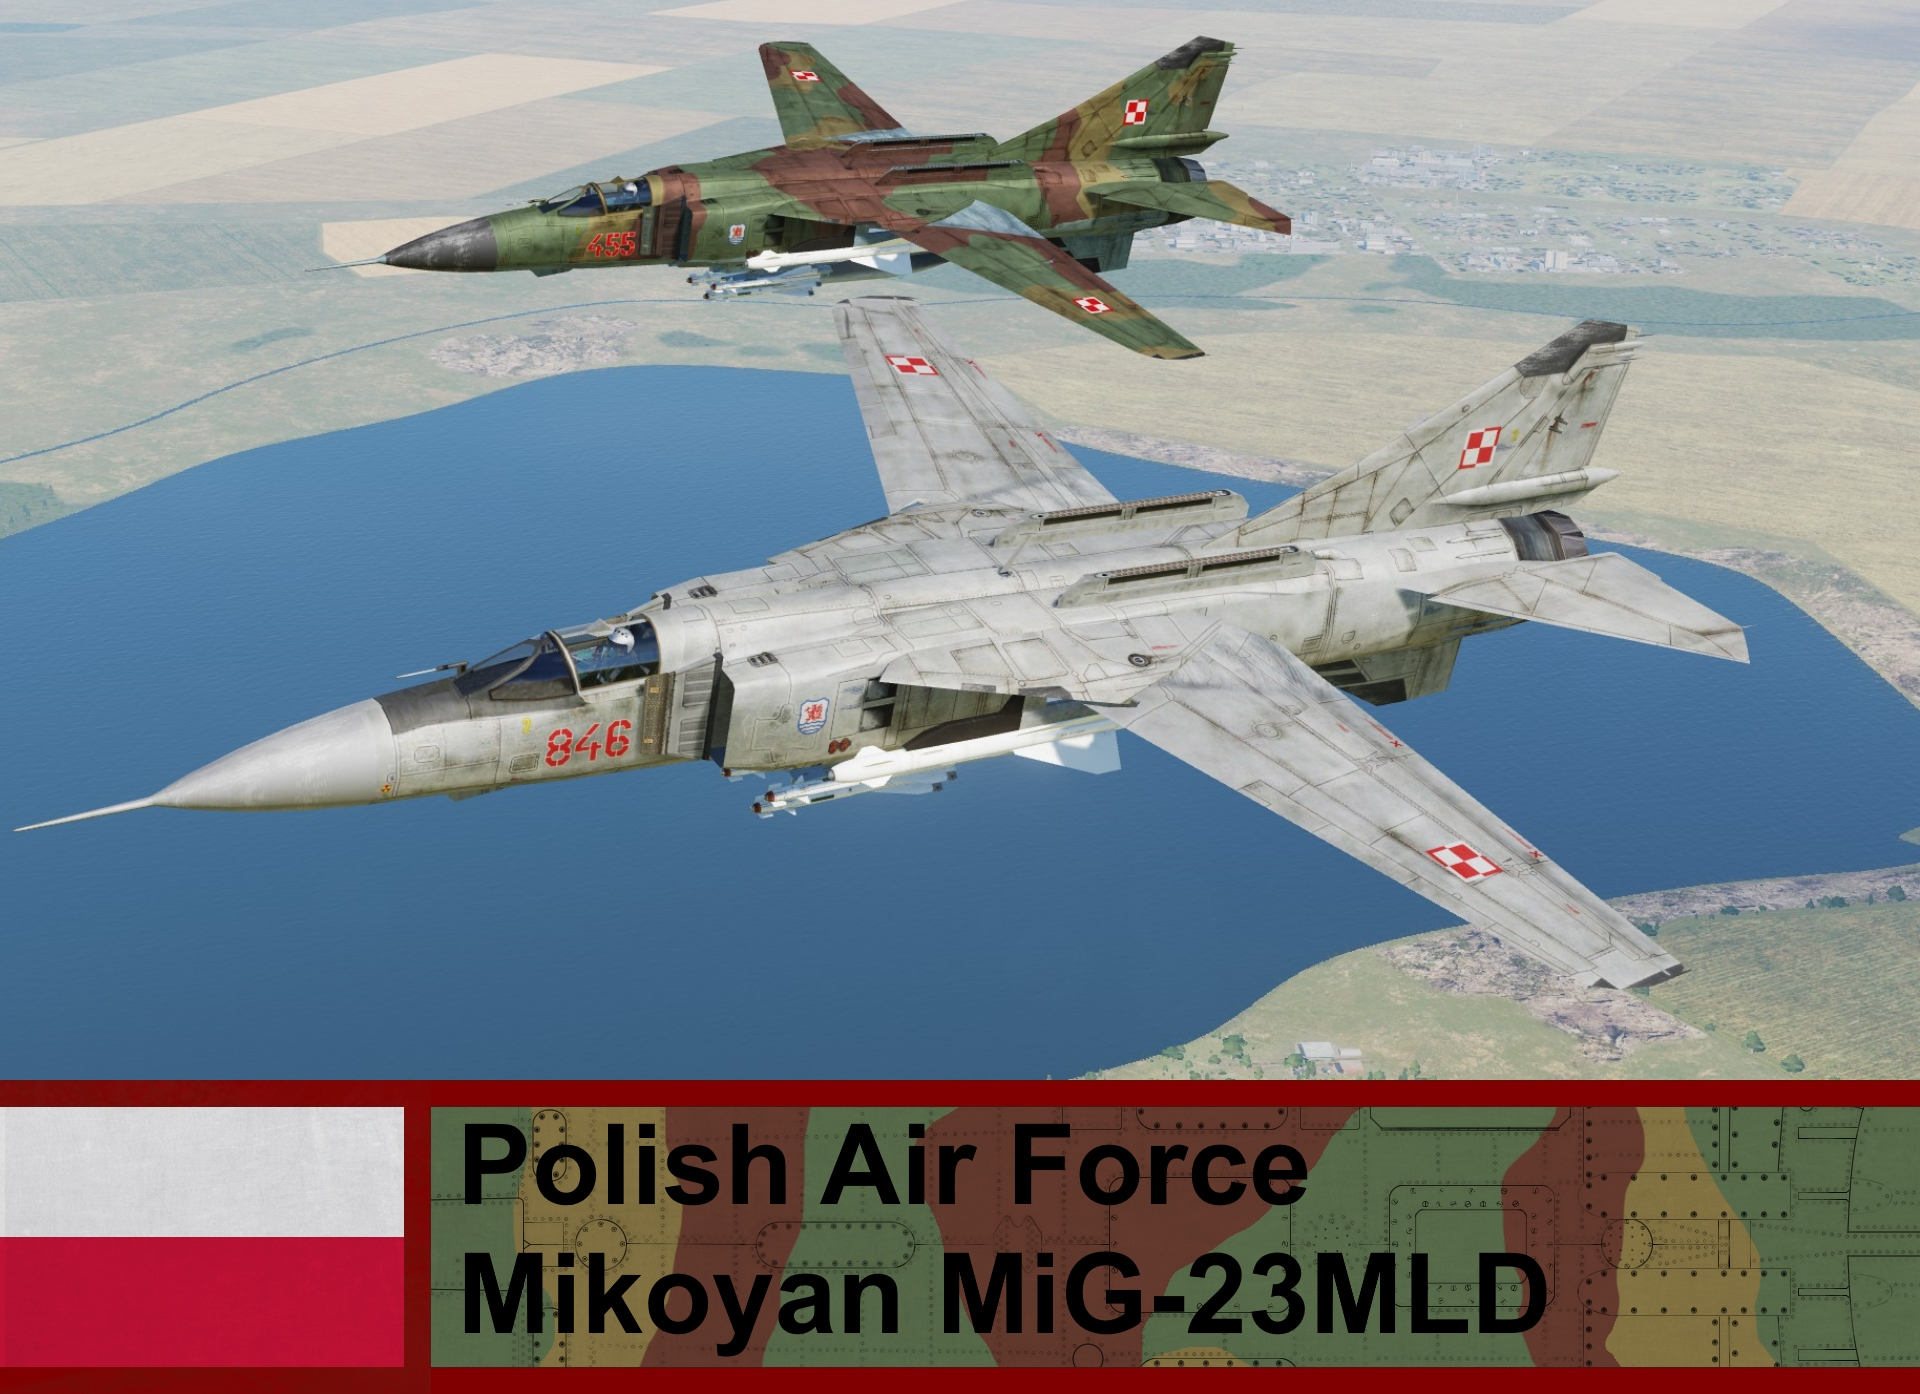 Polish Air Force Mig-23MLD, 28th Fighter Aviation Regiment